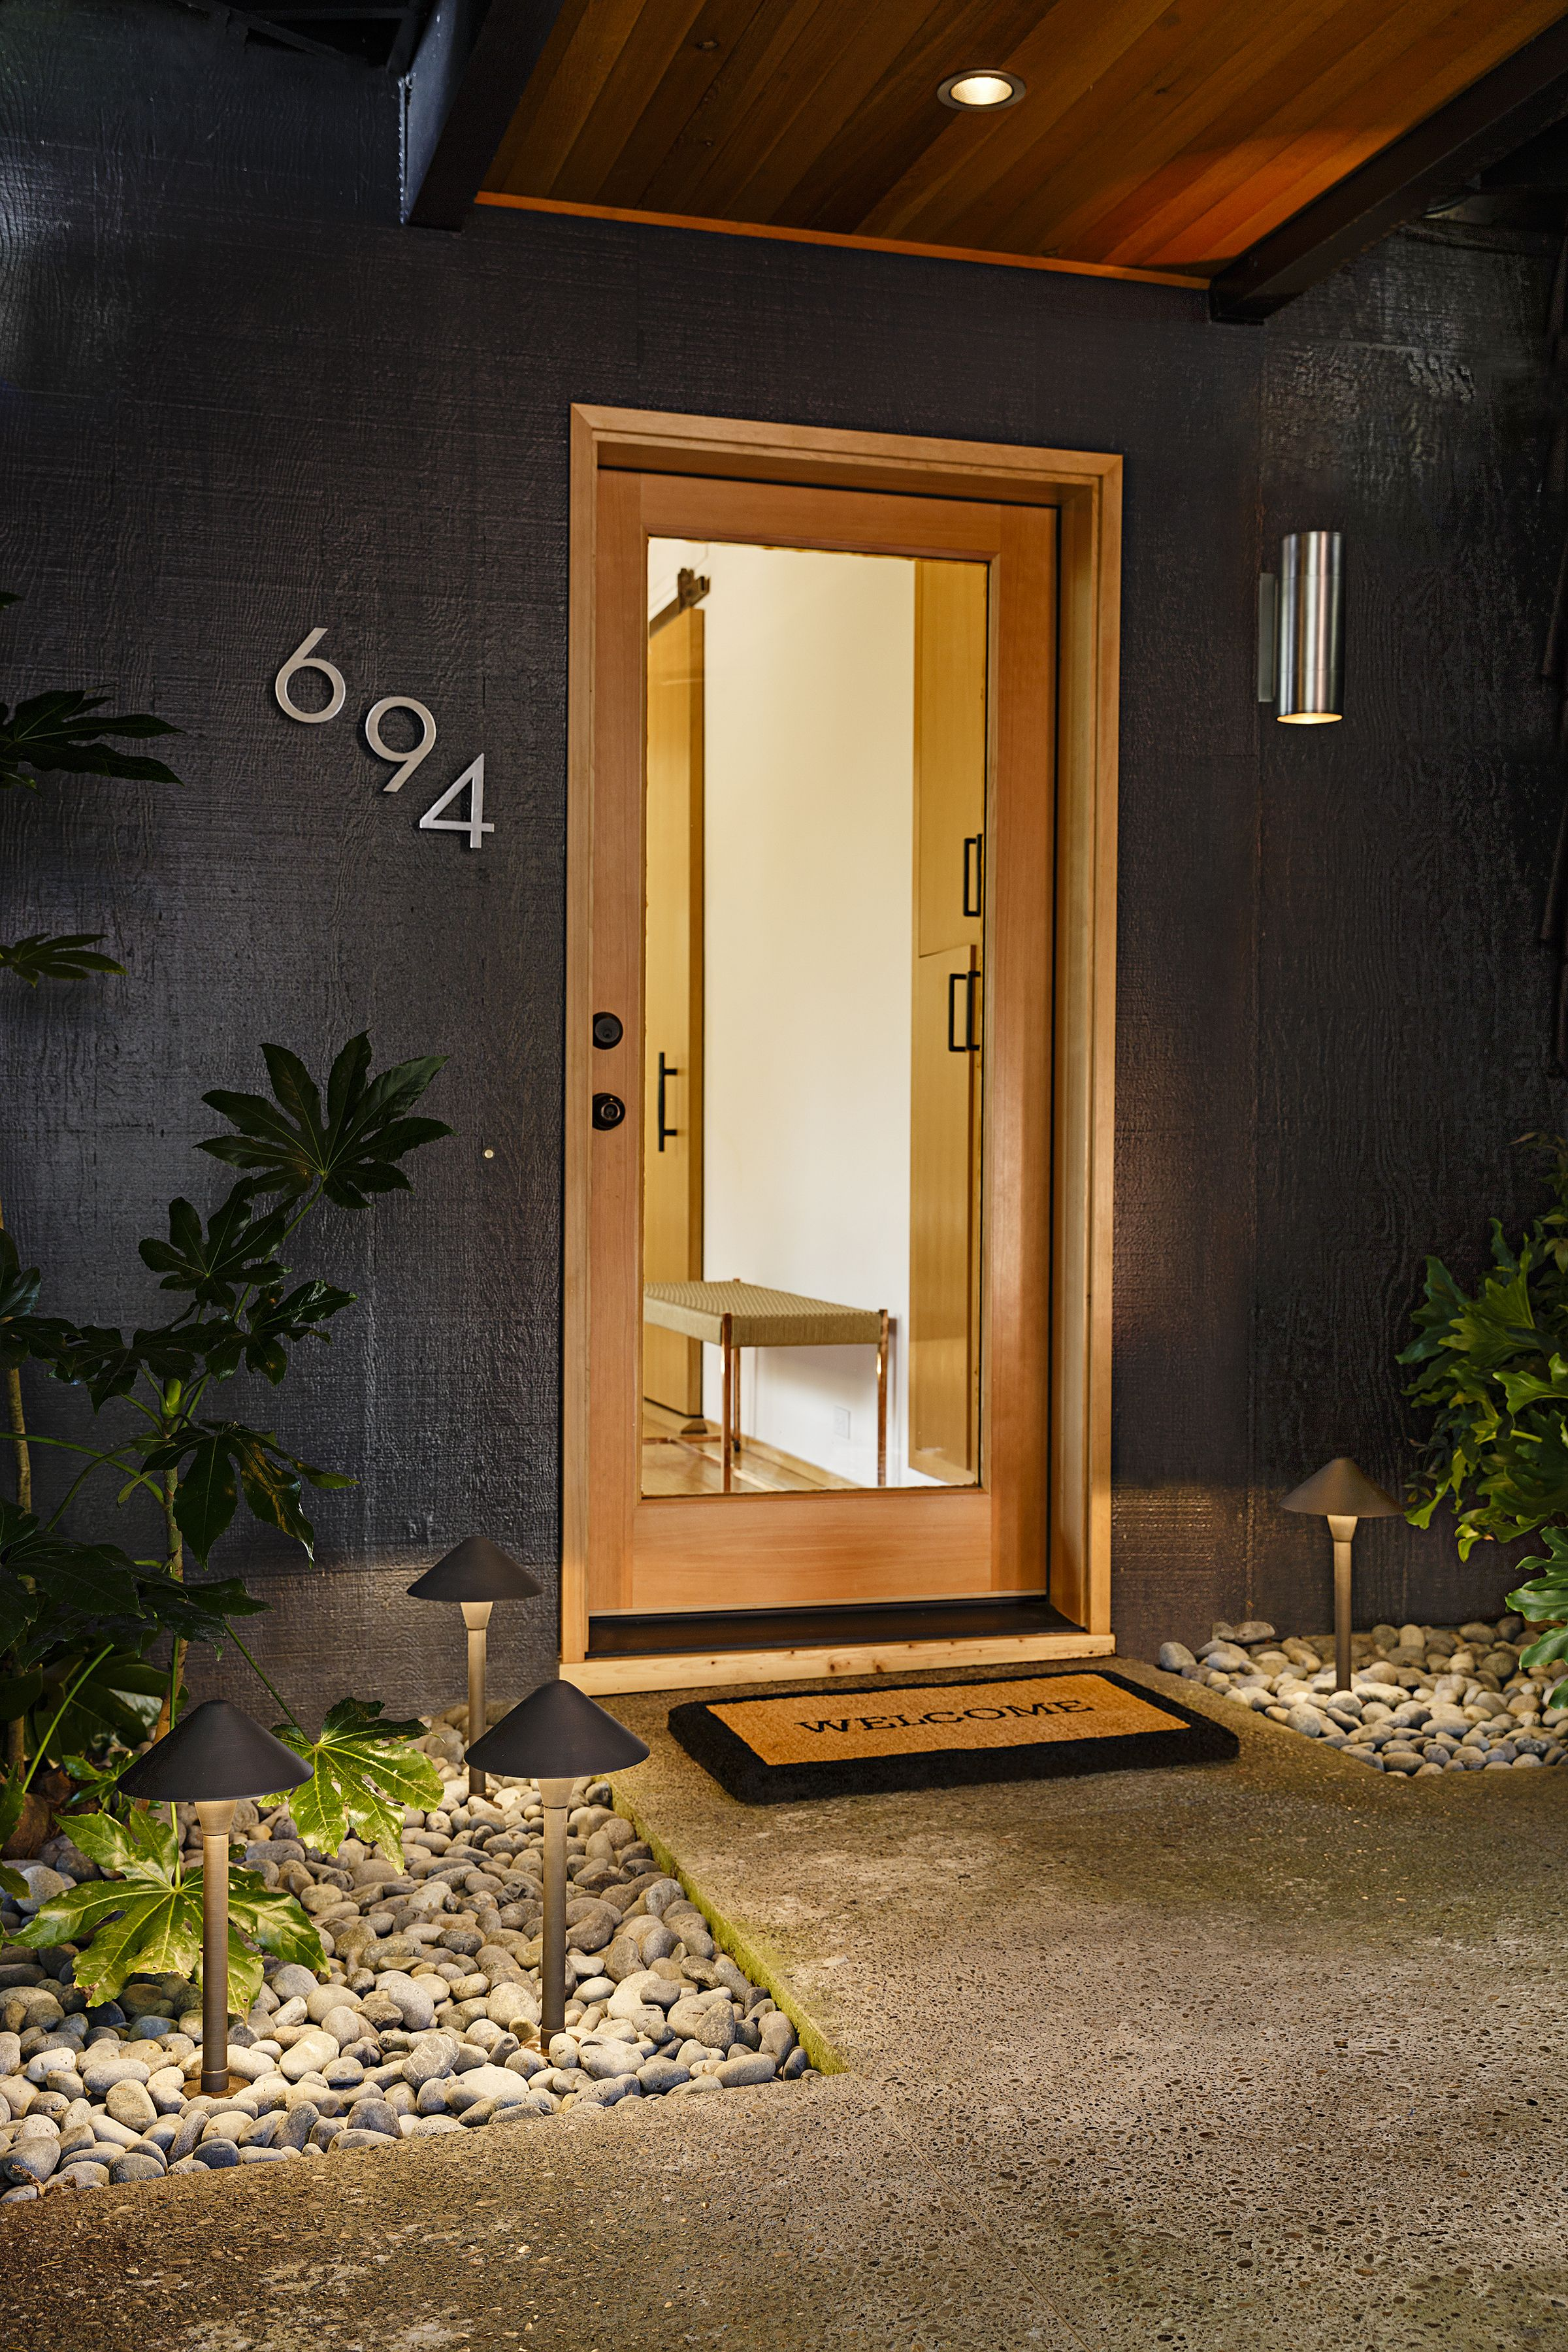 Entrance That warm welcoming glow Curb Appeal Pinterest